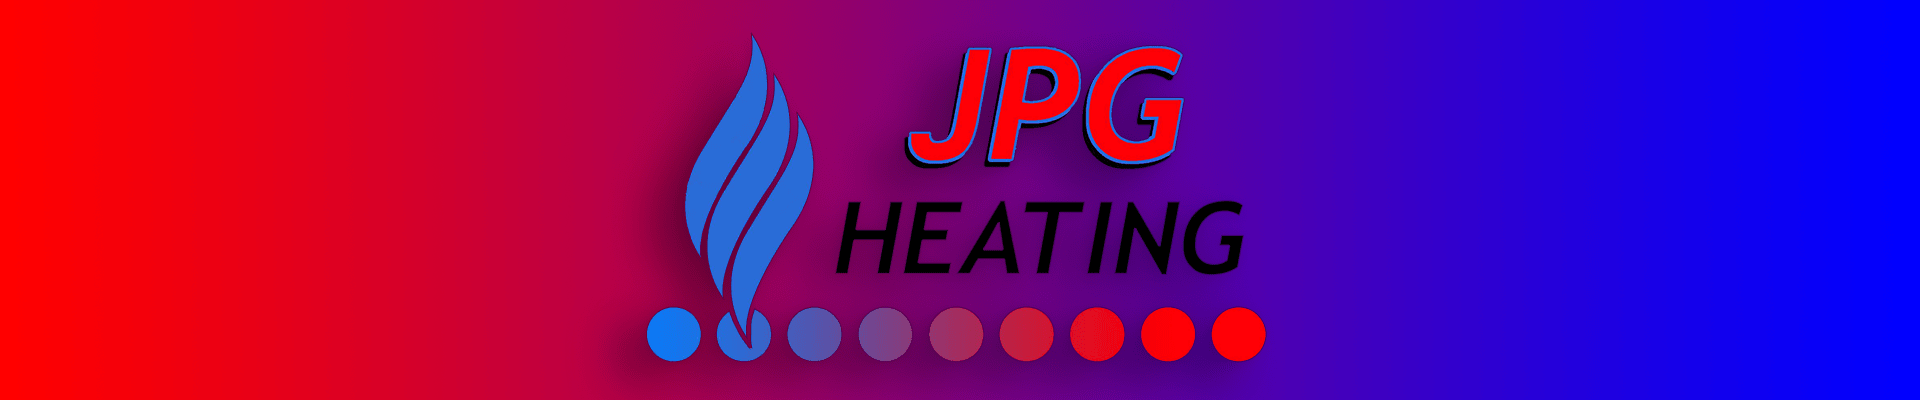 JPG Heating Norwich banner logo